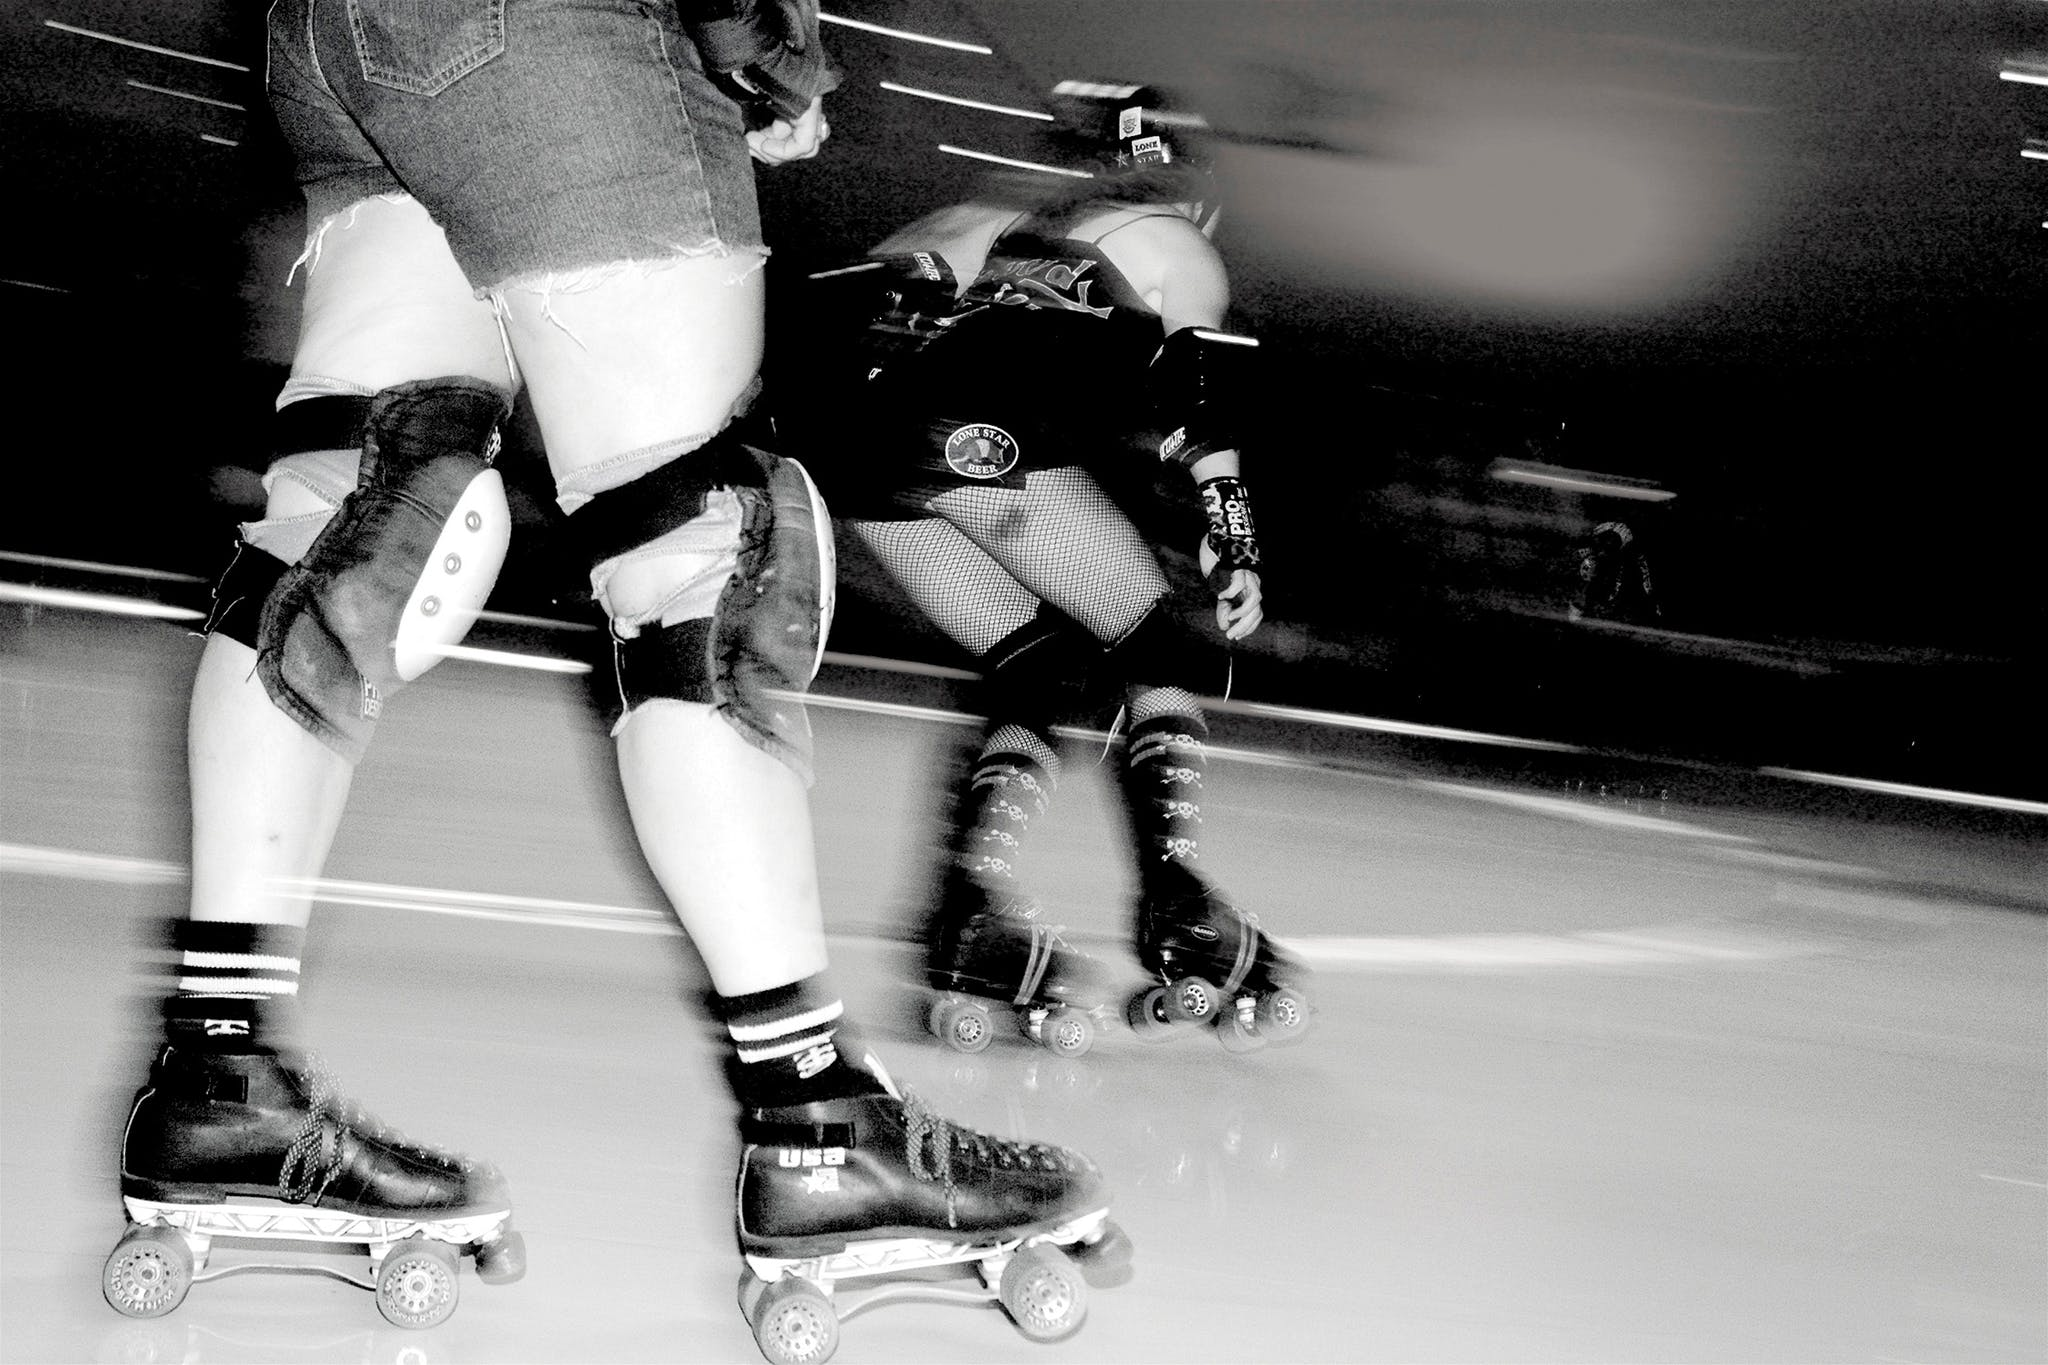 Skaters with Texas Rollergirls round the rink in a roller derby bout.